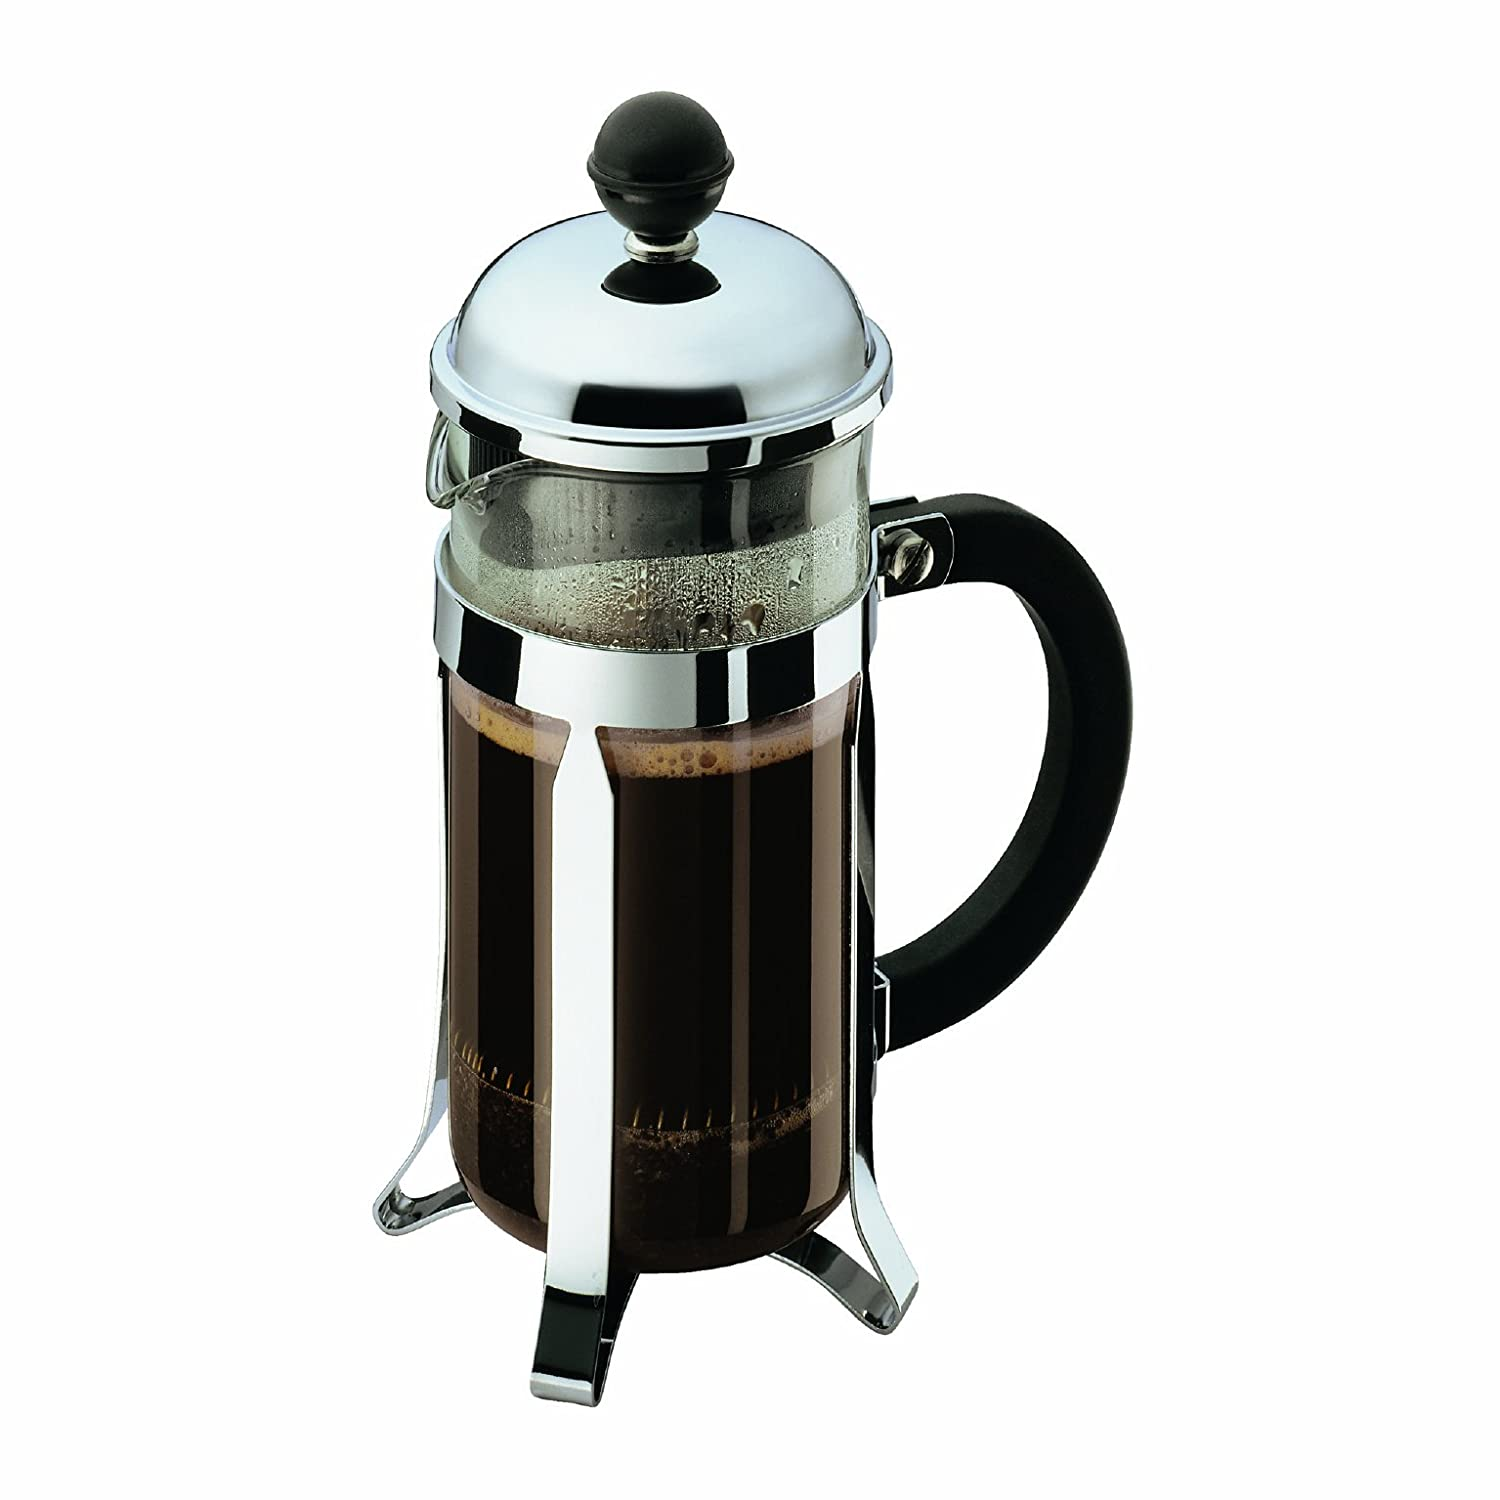 Bed bath beyond french press - Amazon Com Bodum Chambord 3 Cup Shatterproof French Press Coffeemaker 0 35 L 12 Ounce Kitchen Dining